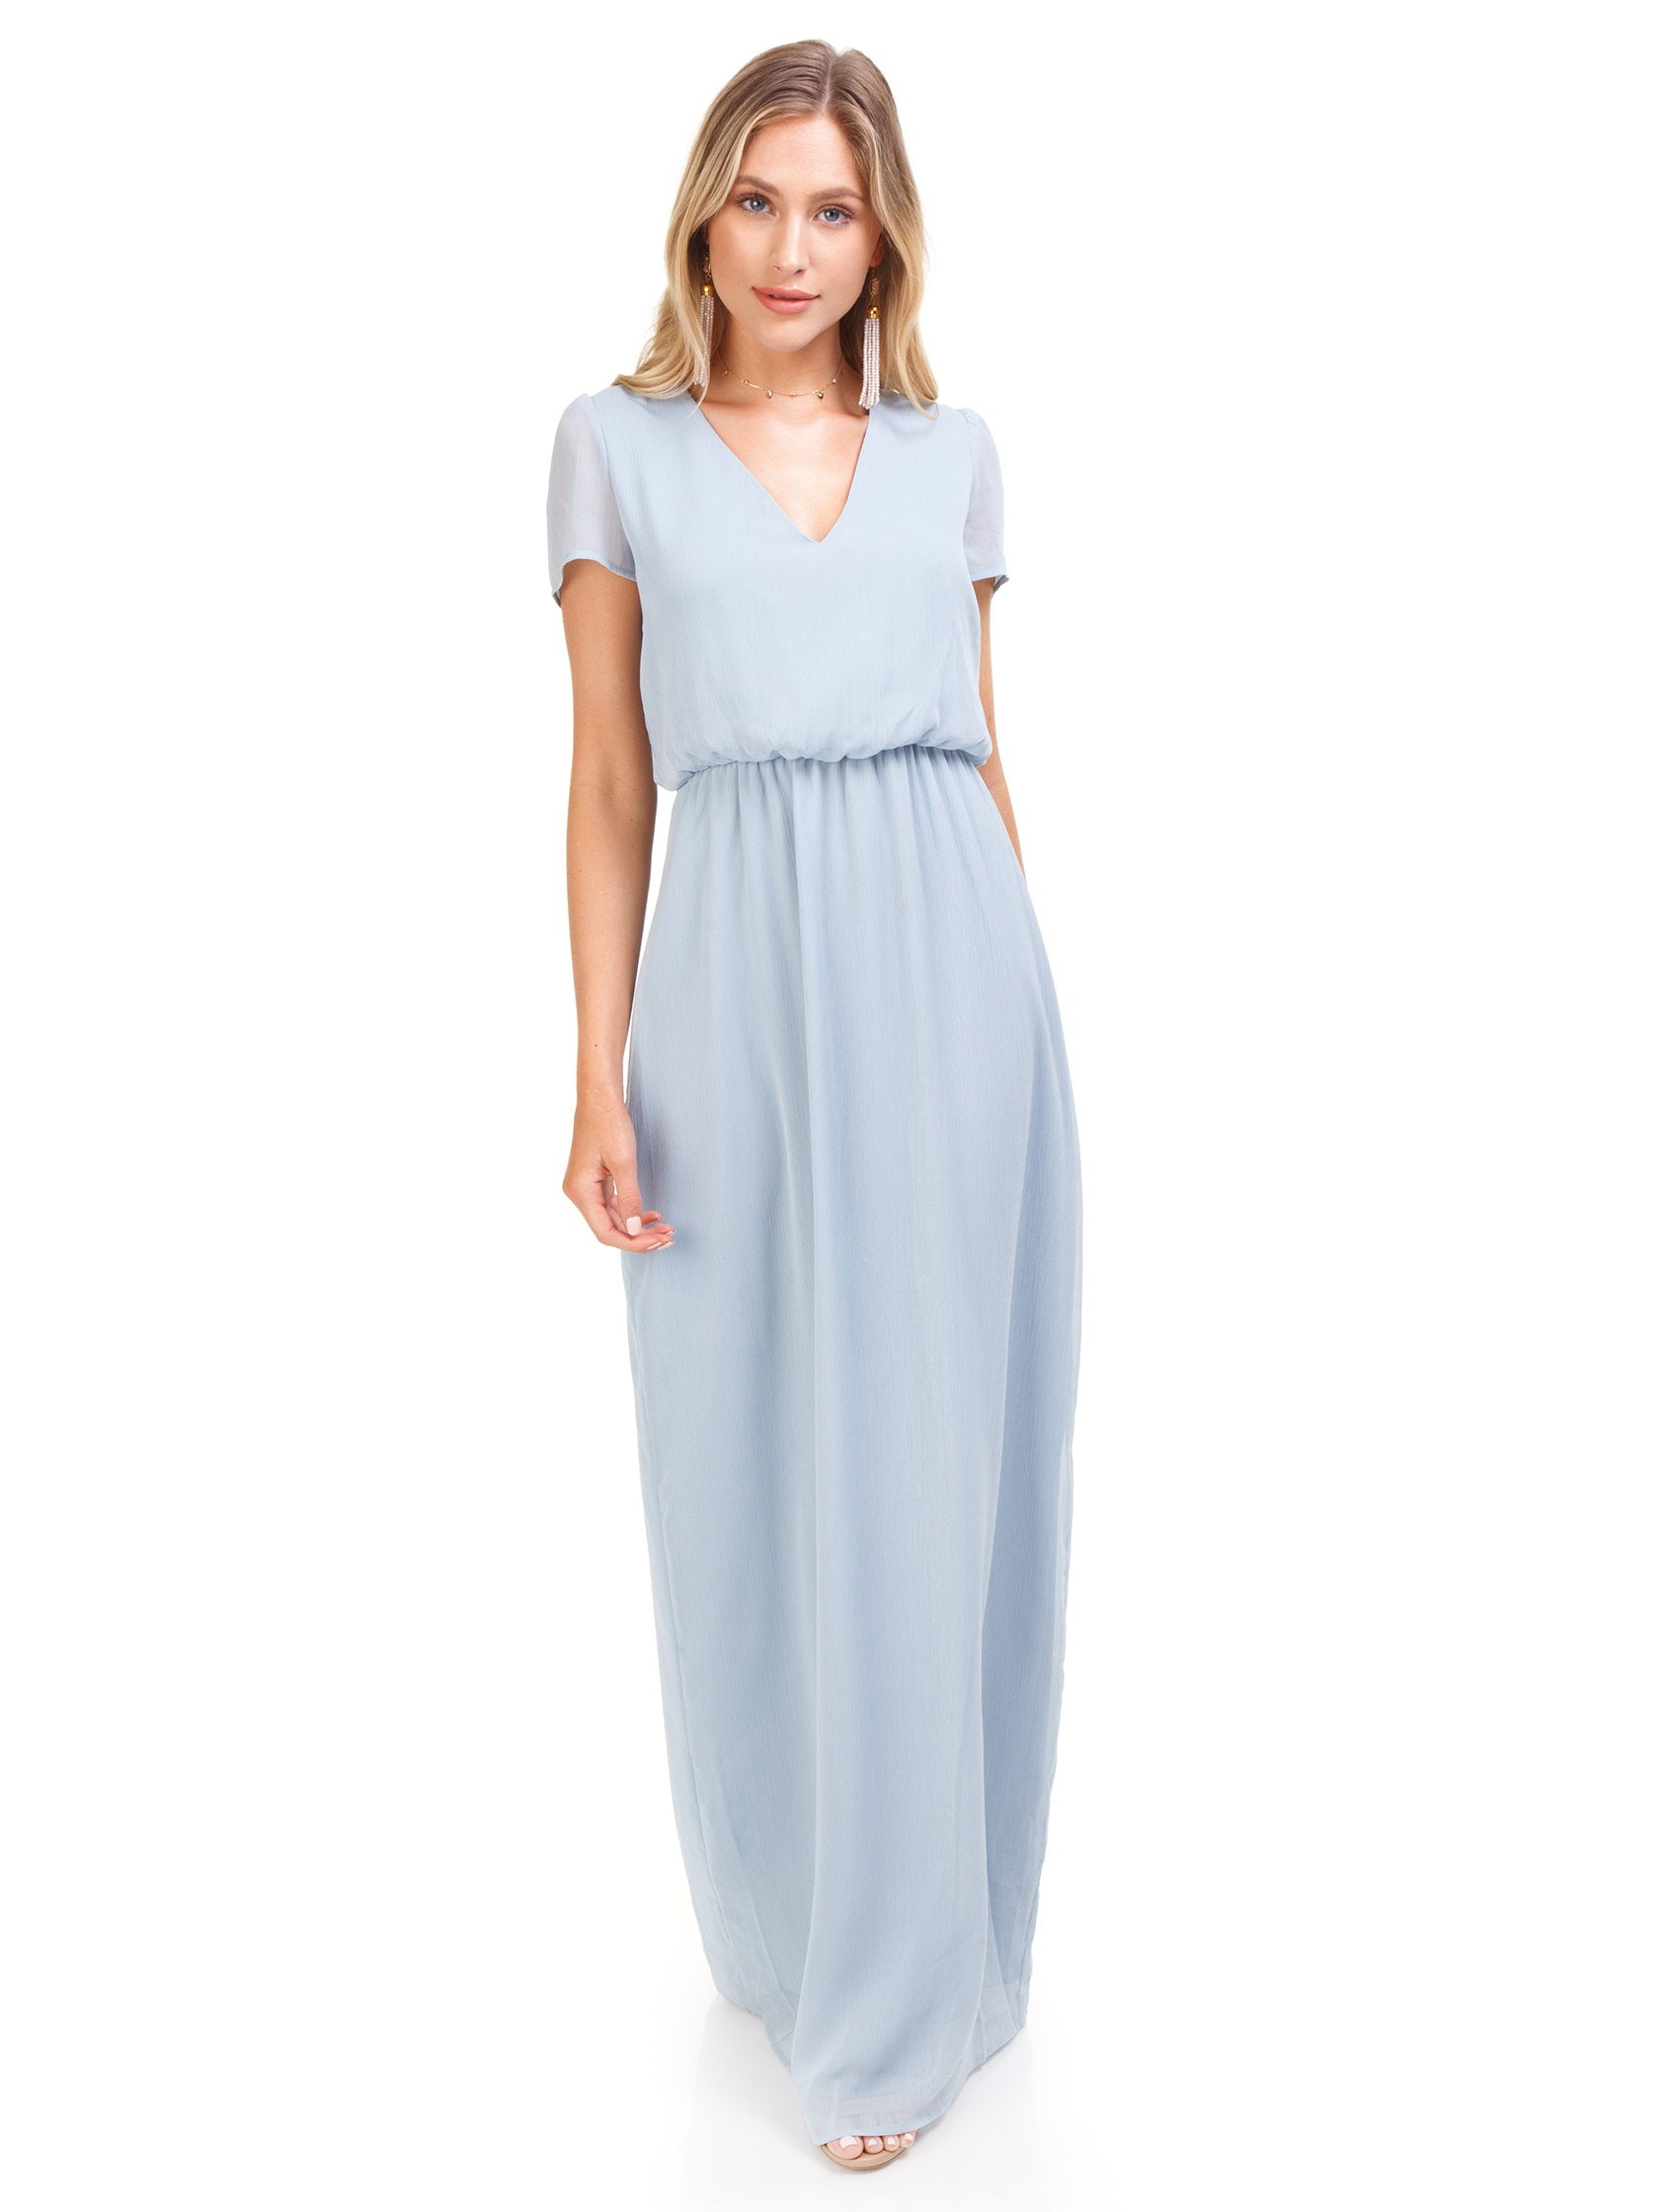 Girl outfit in a dress rental from WAYF called Anna V-neck Tie Back Maxi